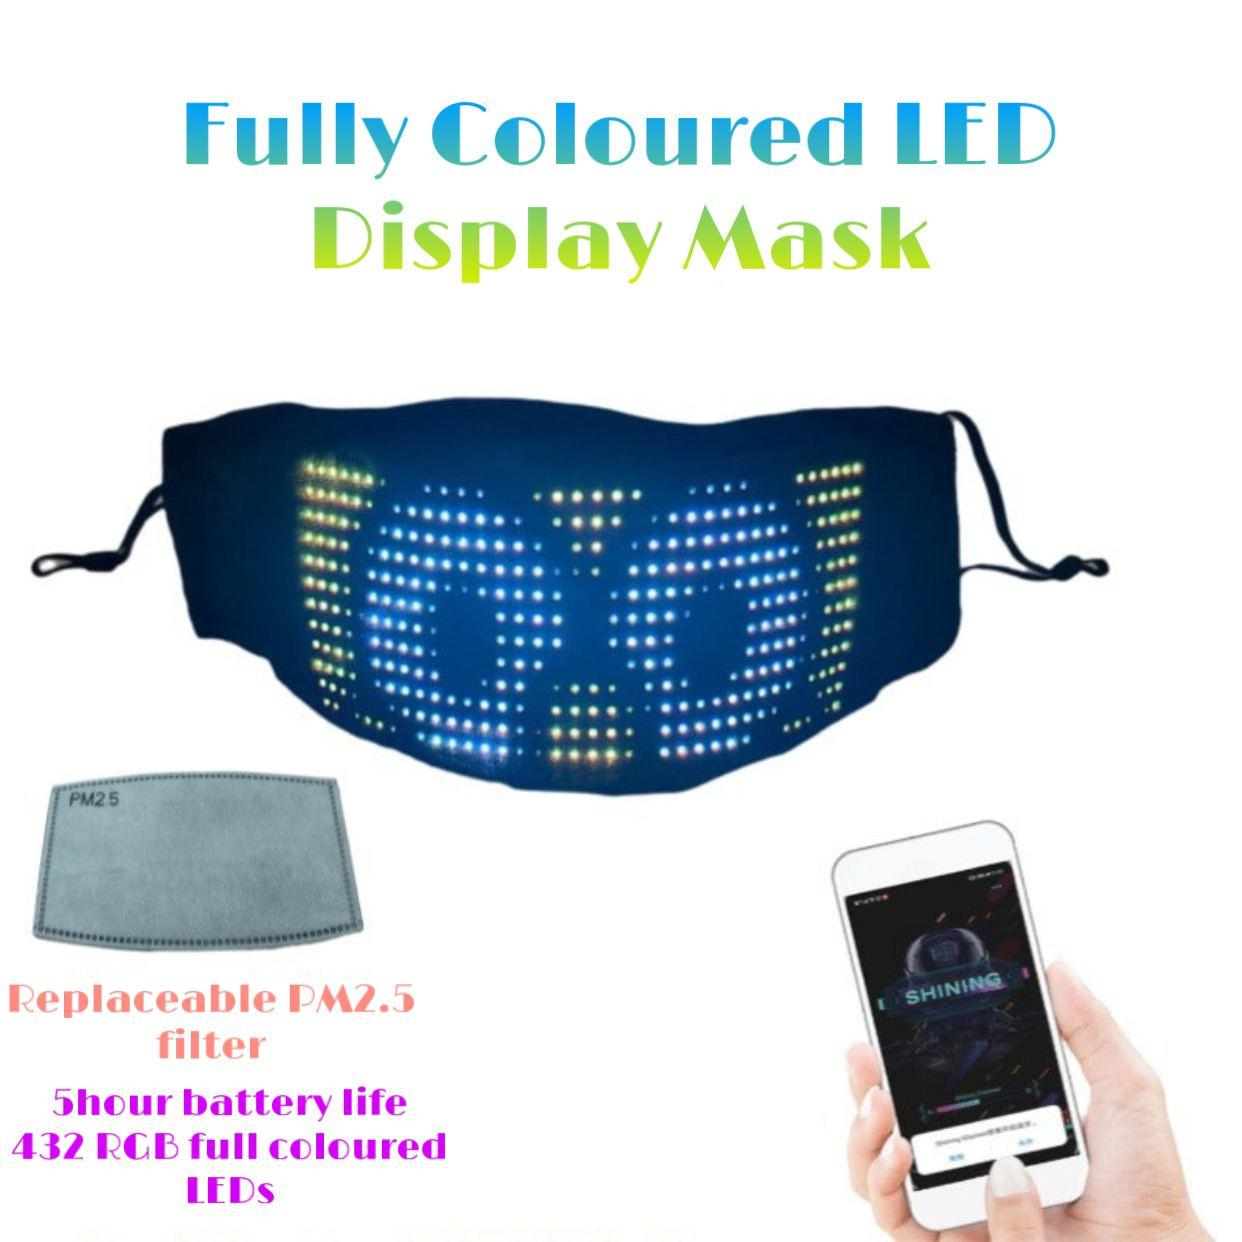 LED Display Mask